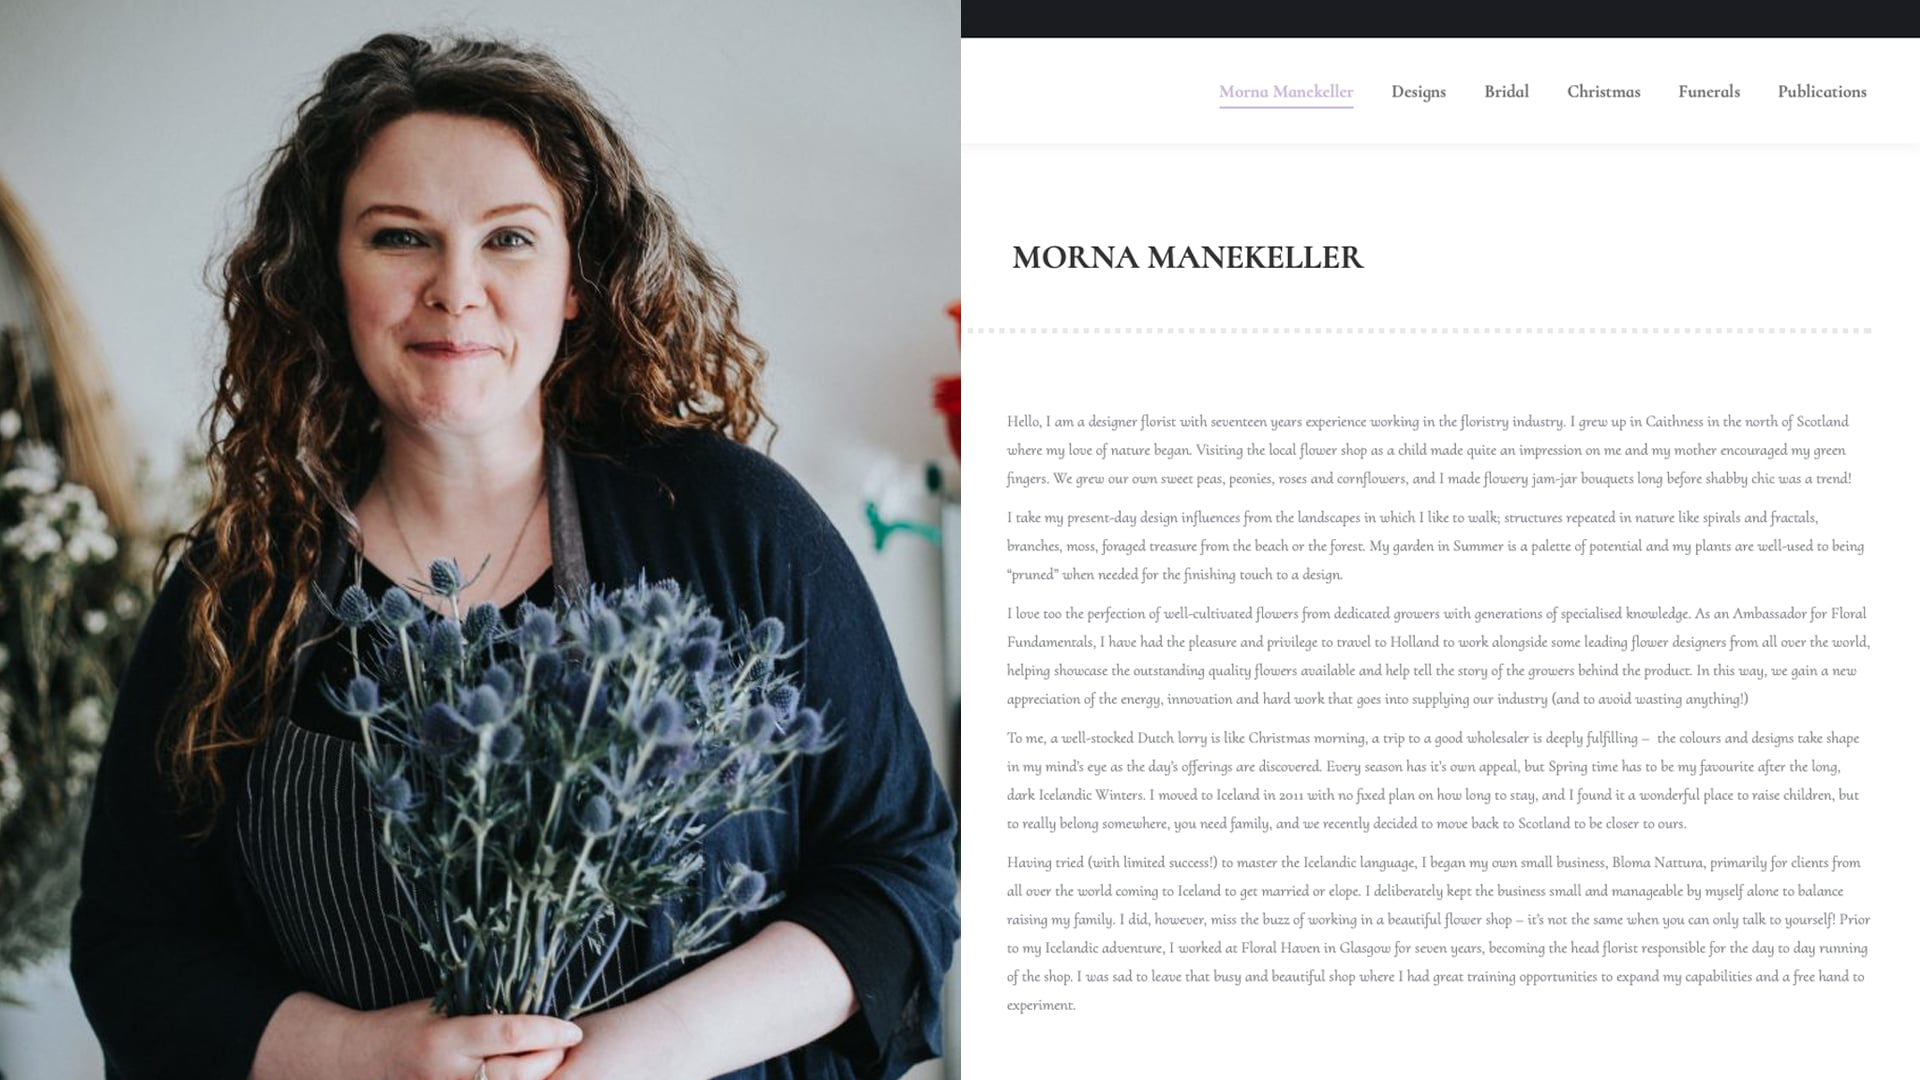 Morna Manekeller - Florsts